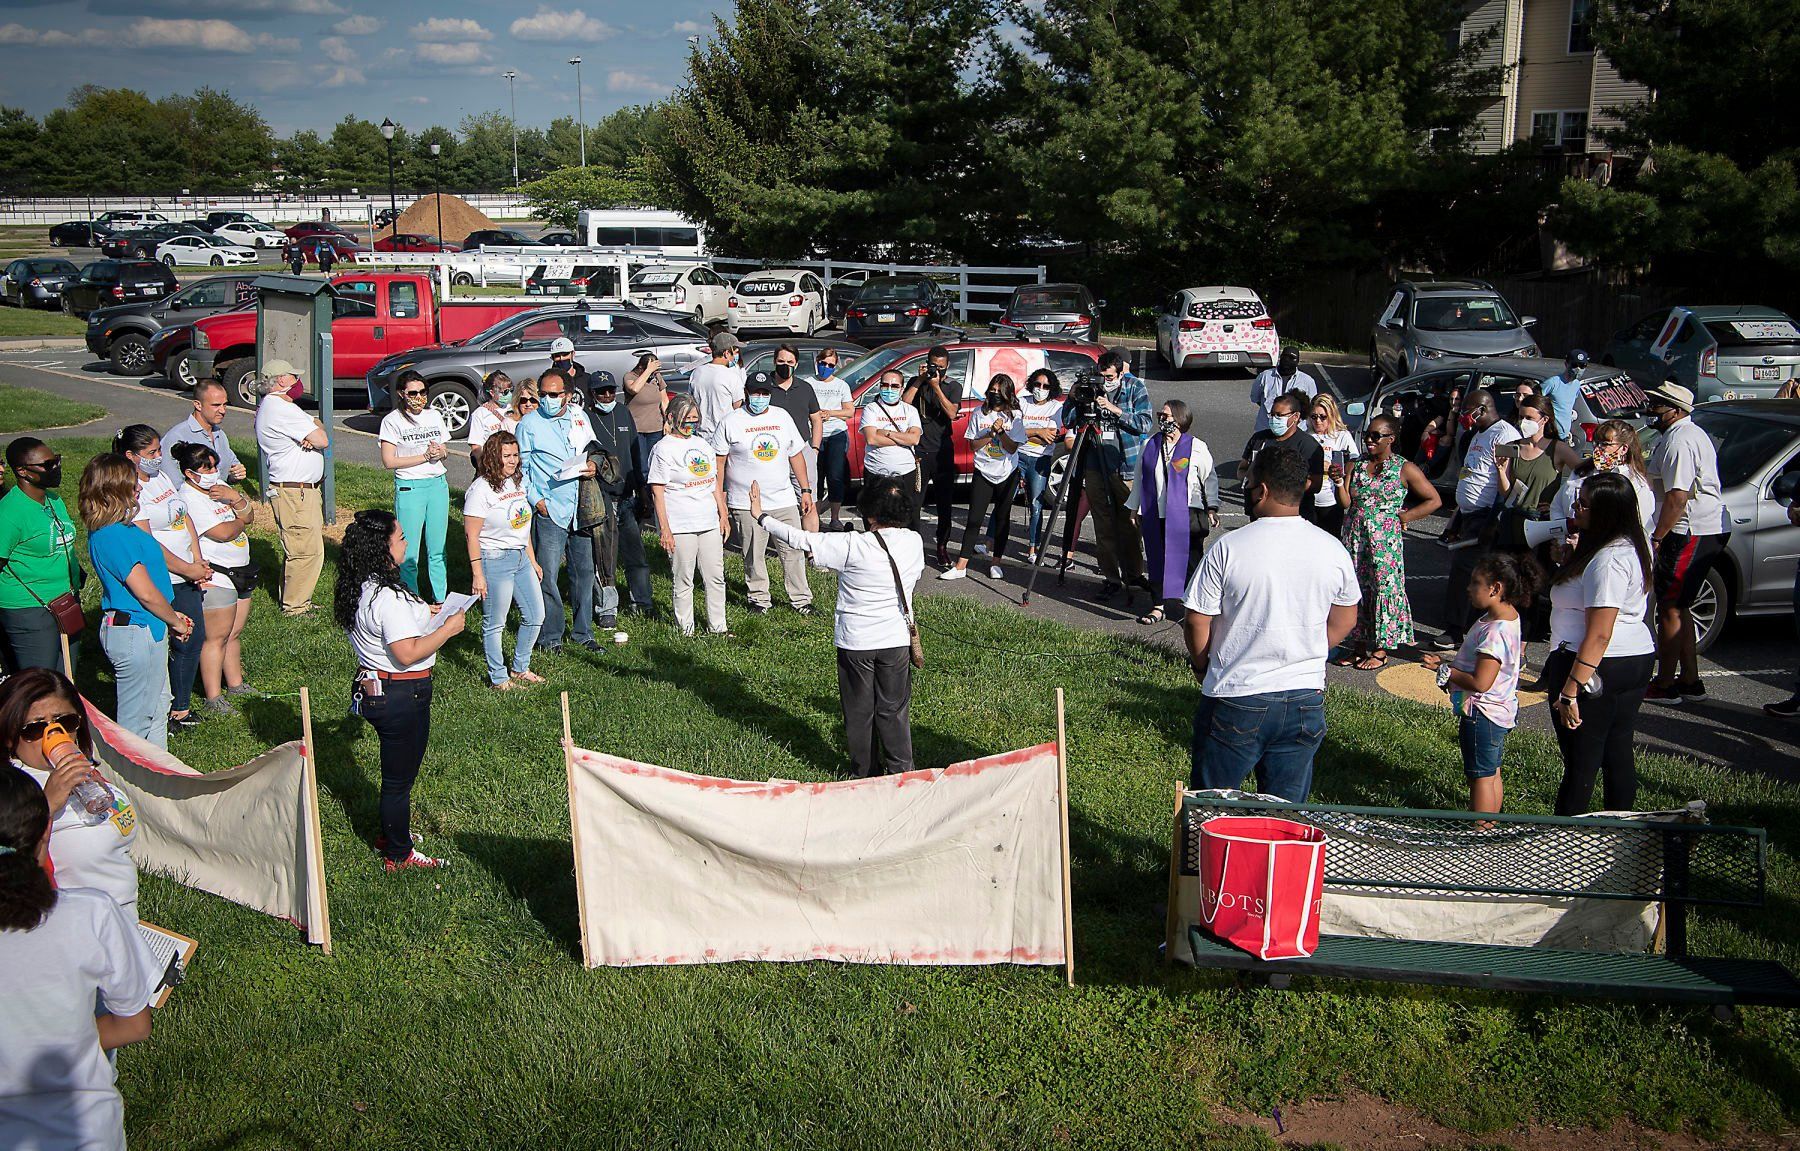 RISE Coalition hosts caravan rally in Frederick for immigrant rights